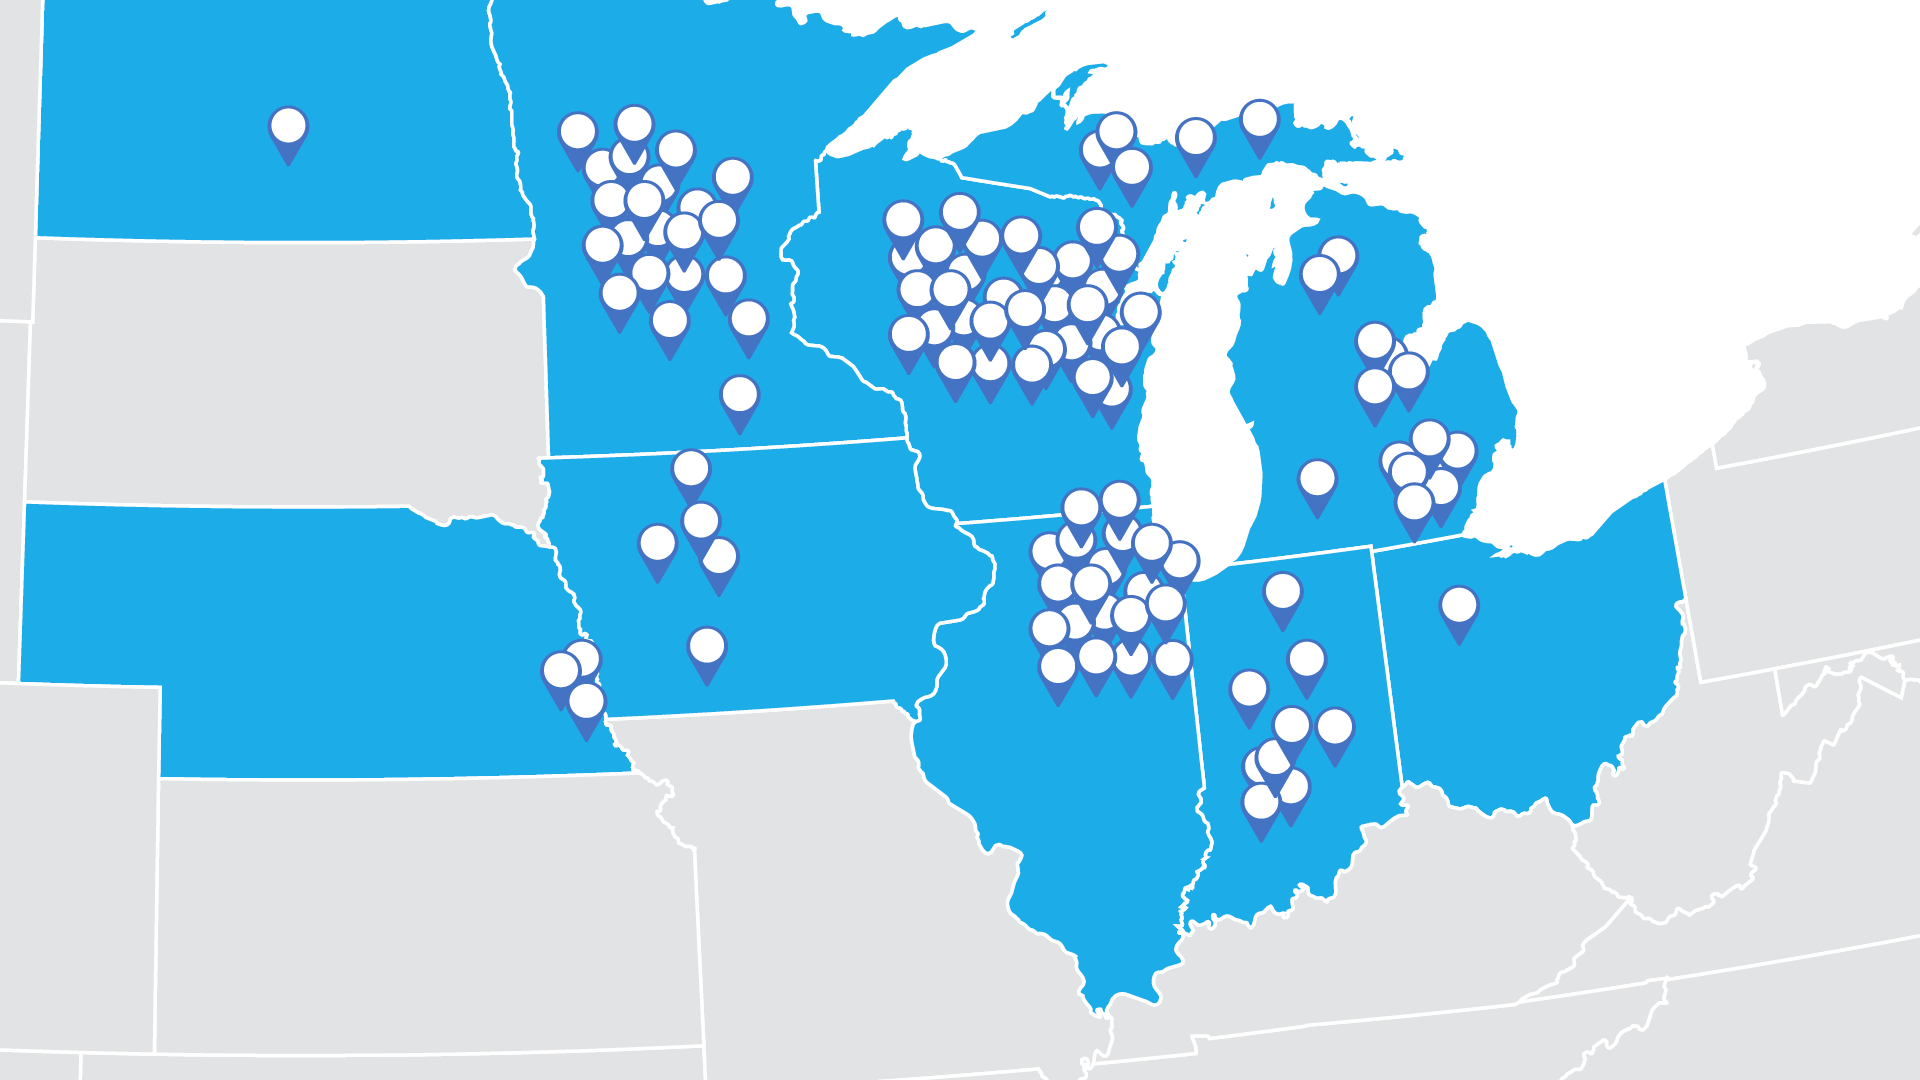 mid-west region image